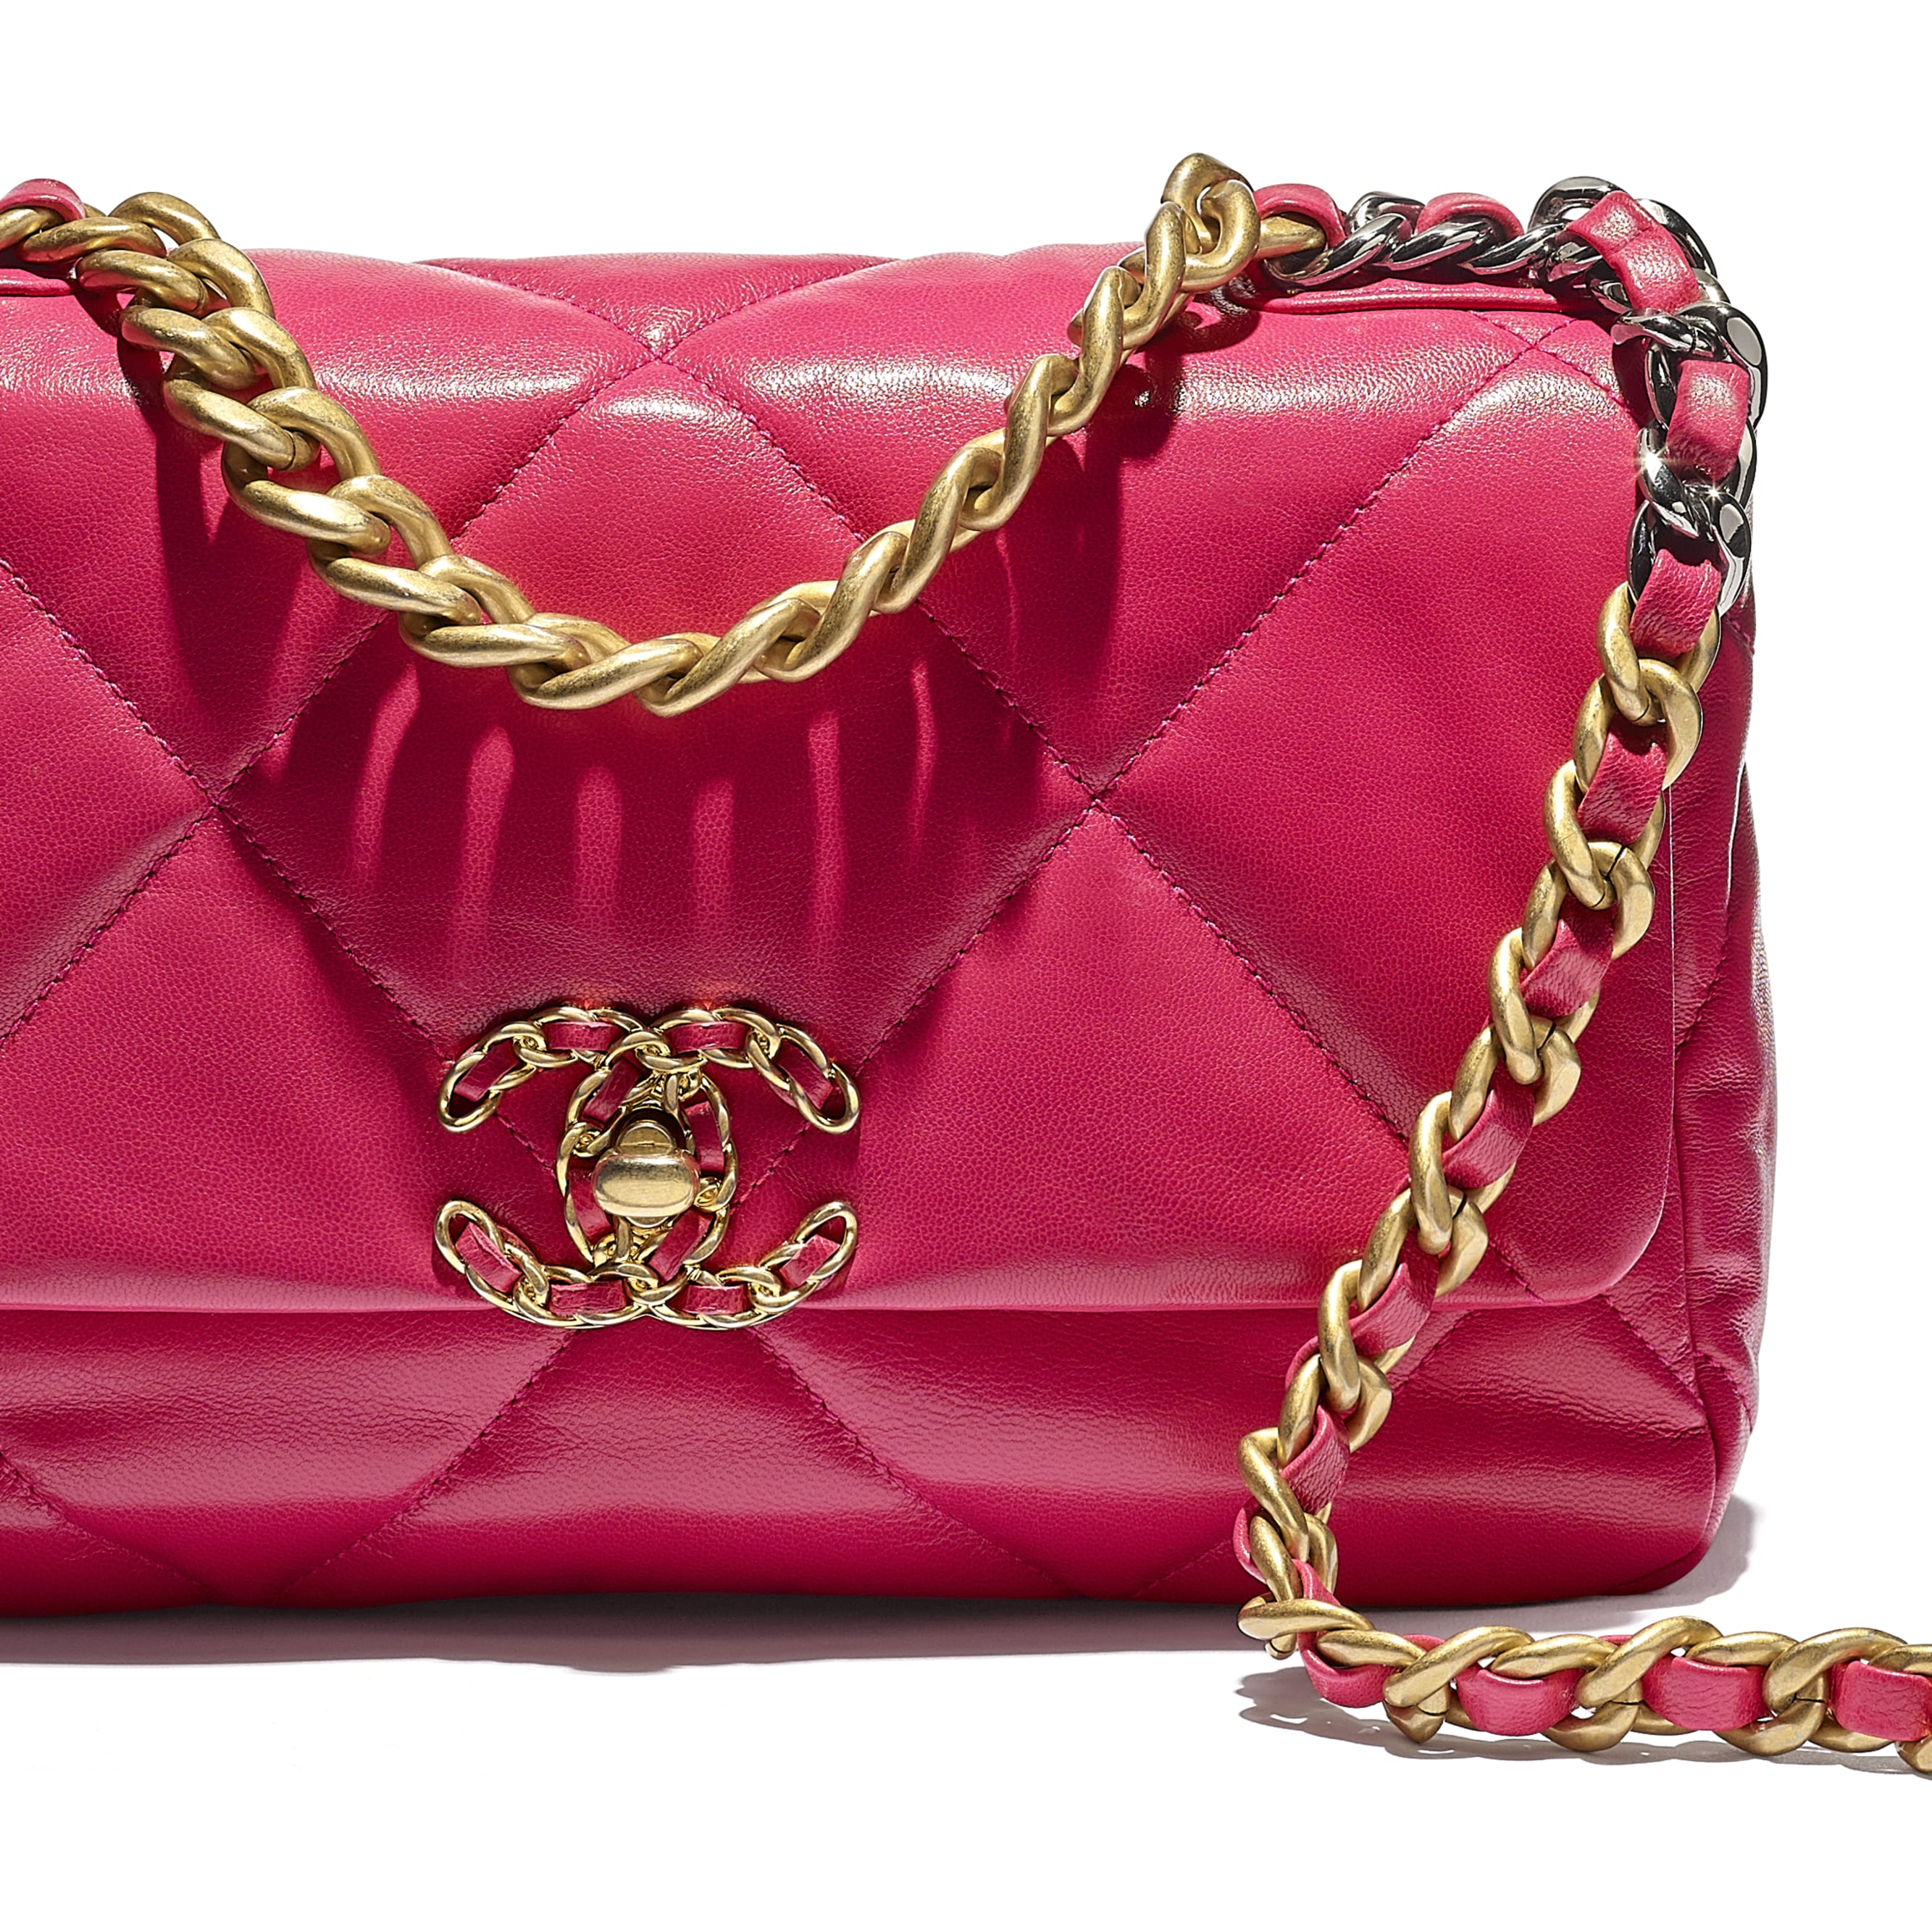 CHANEL 19 Flap Bag - Pink - Goatskin, Gold-Tone, Silver-Tone & Ruthenium-Finish Metal - CHANEL - Extra view - see standard sized version